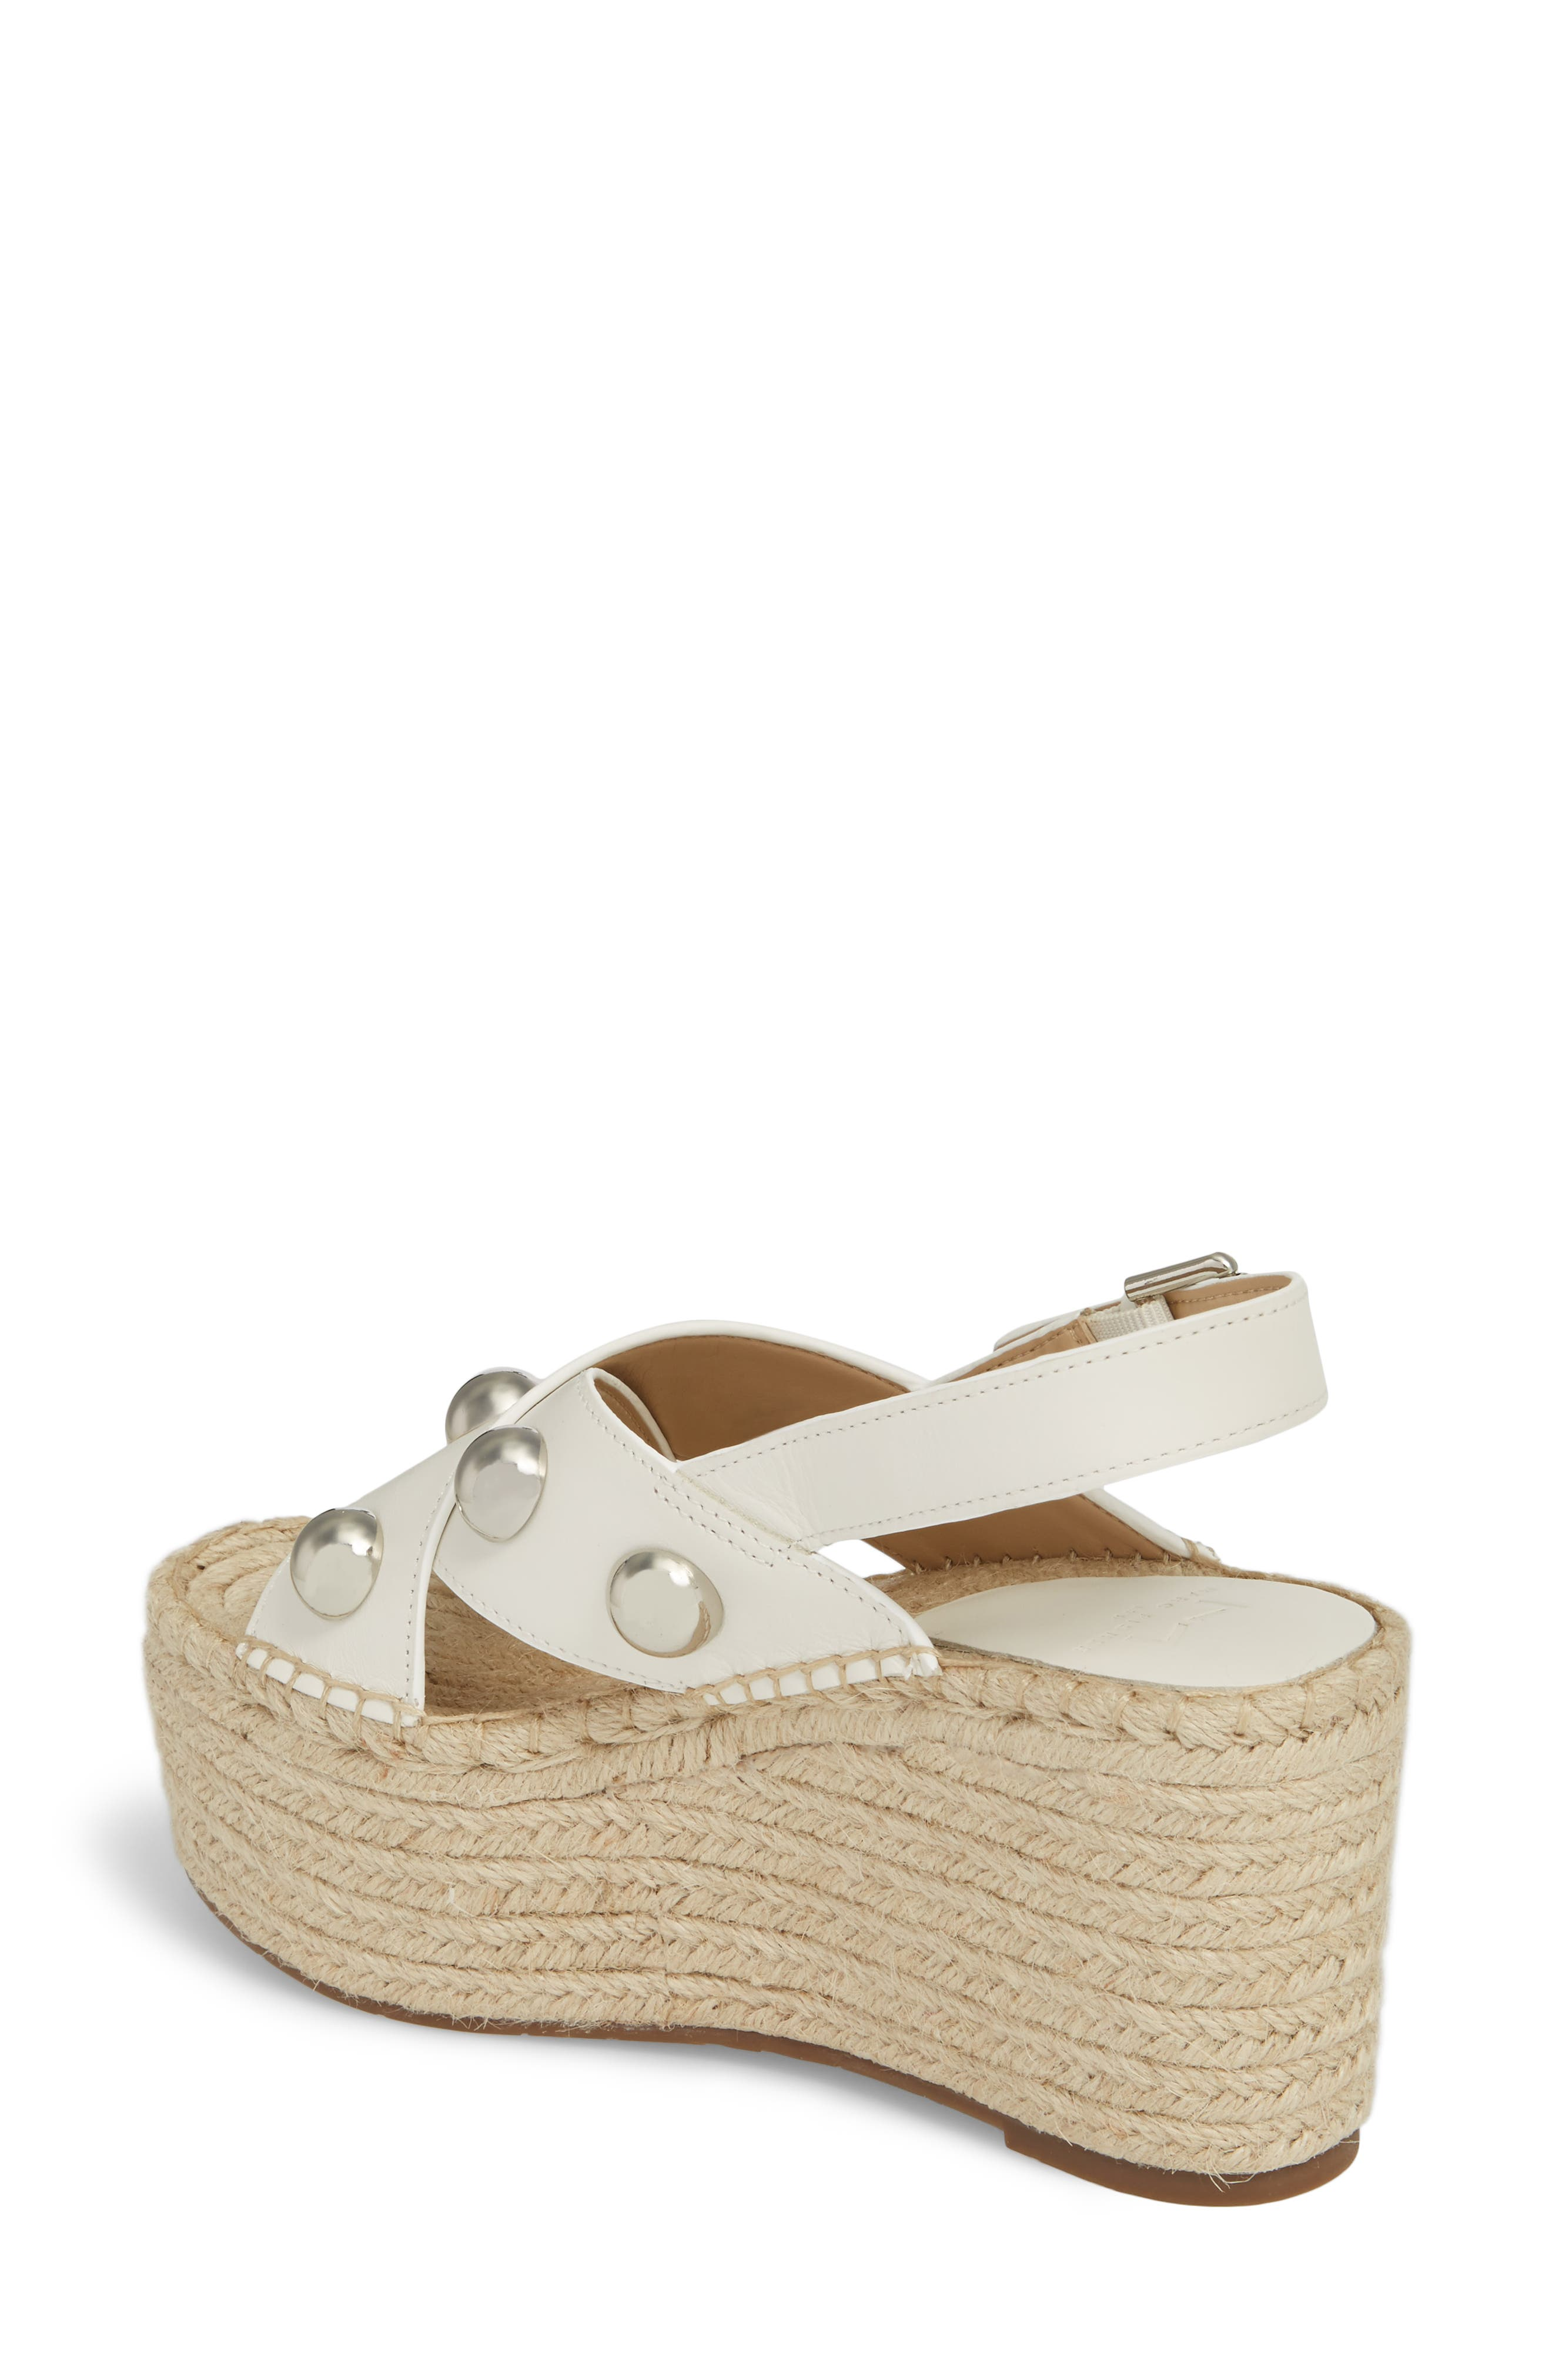 Rella Espadrille Platform Sandal,                             Alternate thumbnail 2, color,                             Ivory Leather